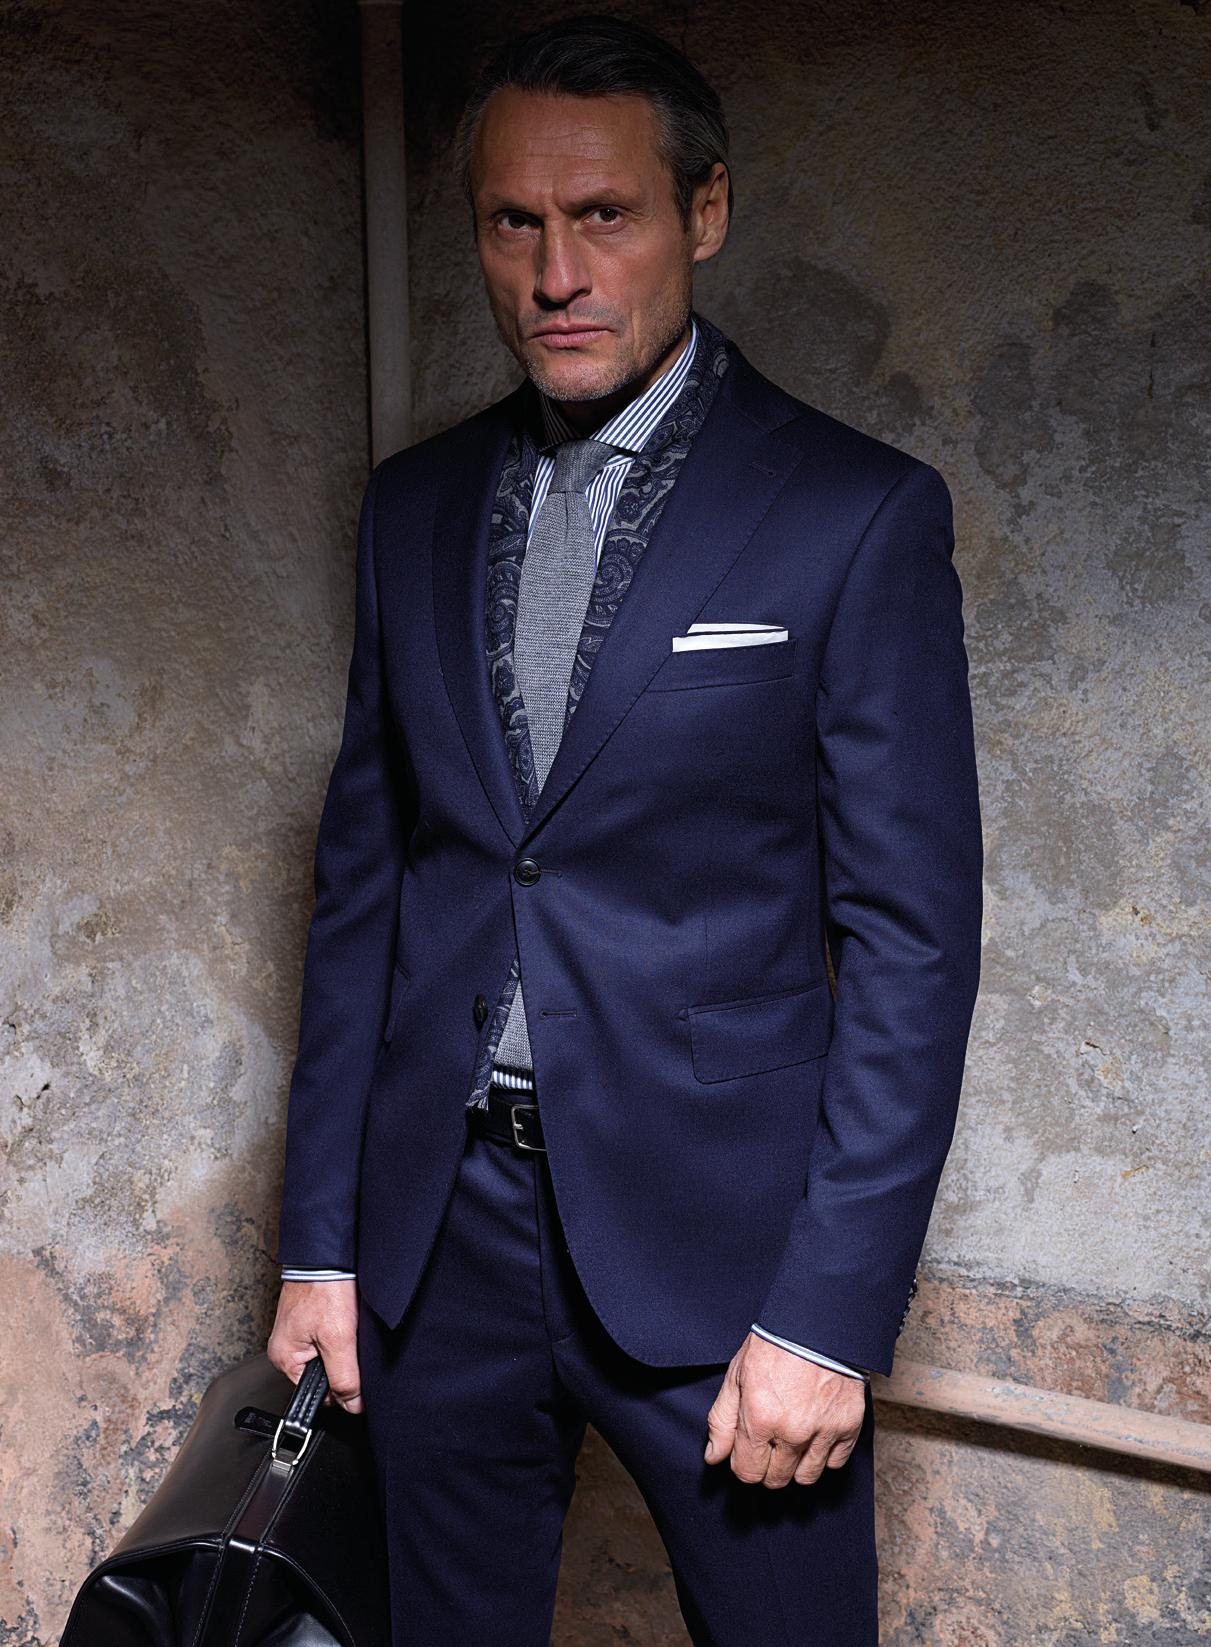 b3d045391231 Mens Formal Wear, Office Wear suits for hire in Bracknell, Maidenhead,  Reading,